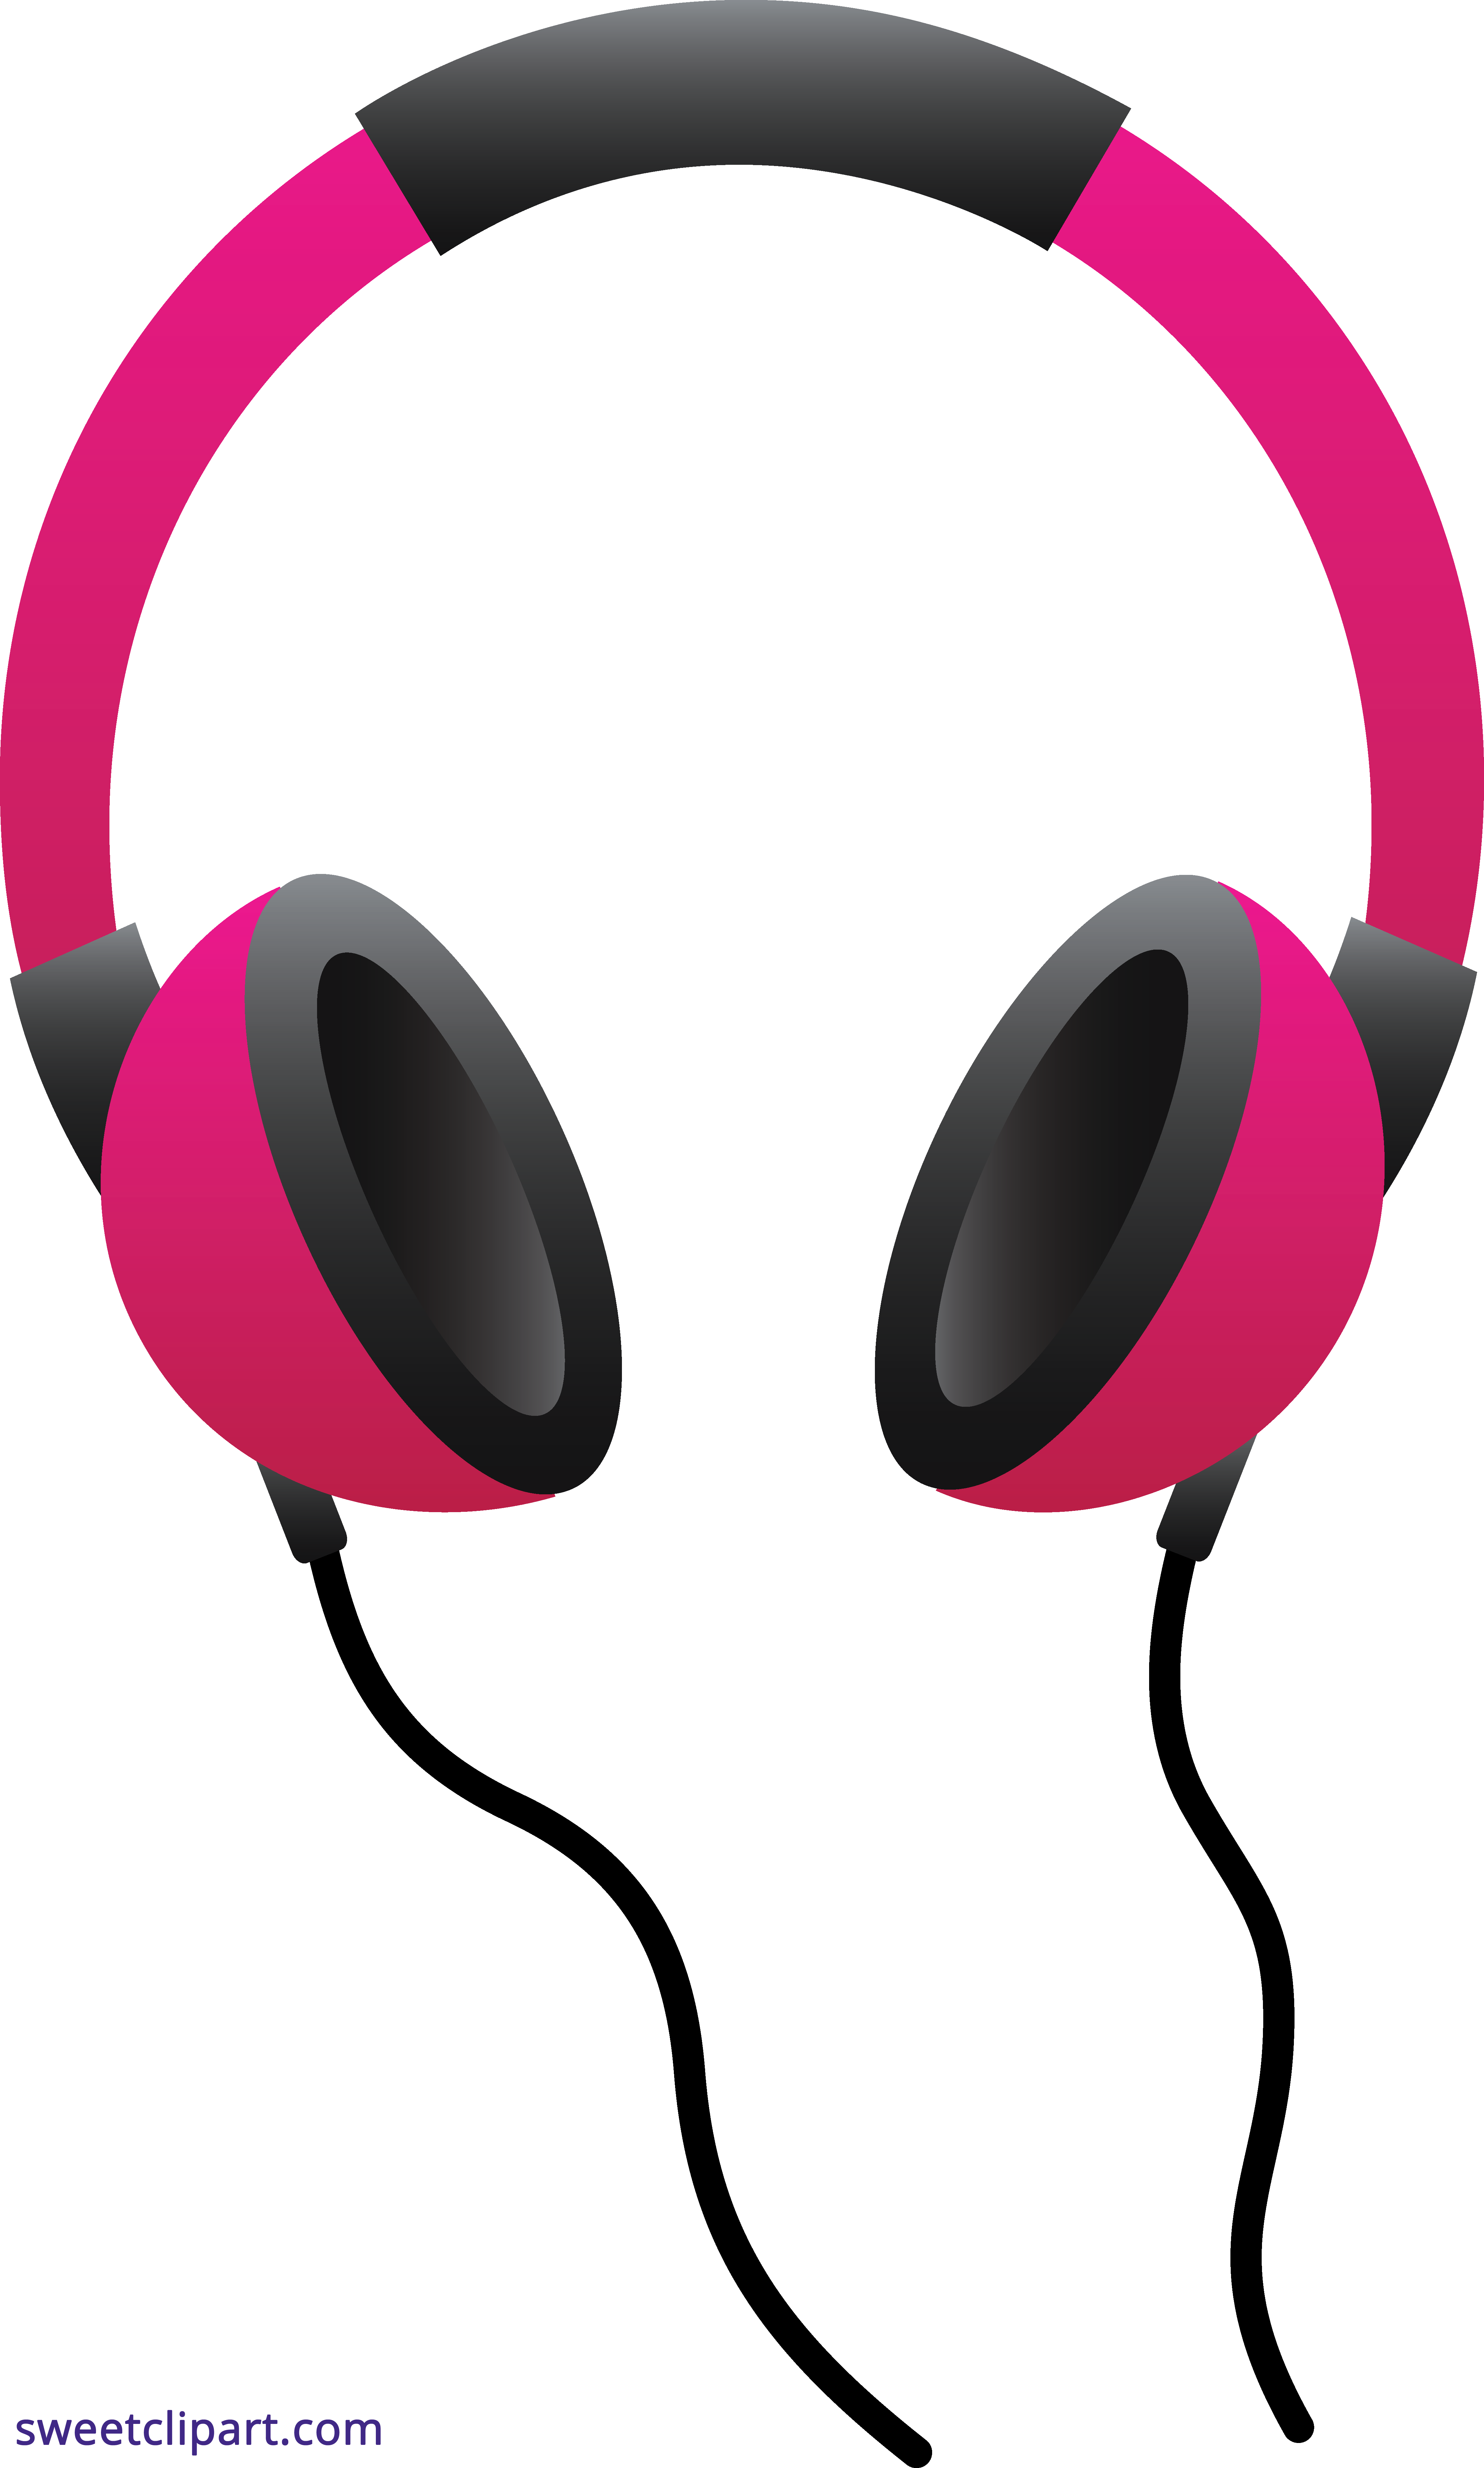 graphic royalty free stock Pink Headphones Clipart